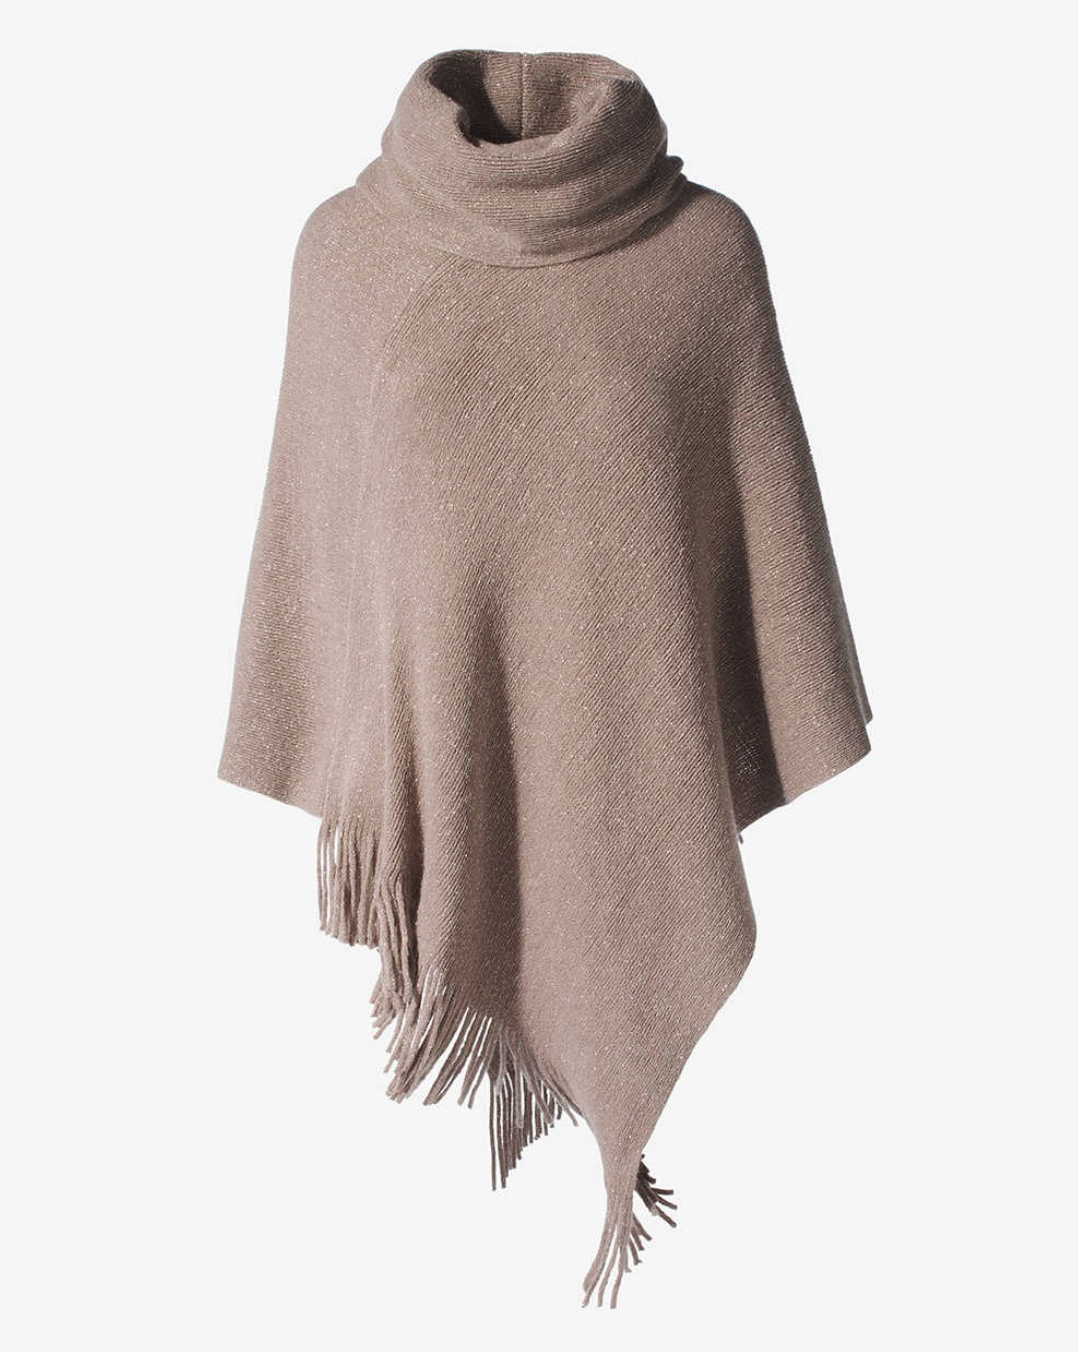 tanger outlets chico's triangle cut beige poncho